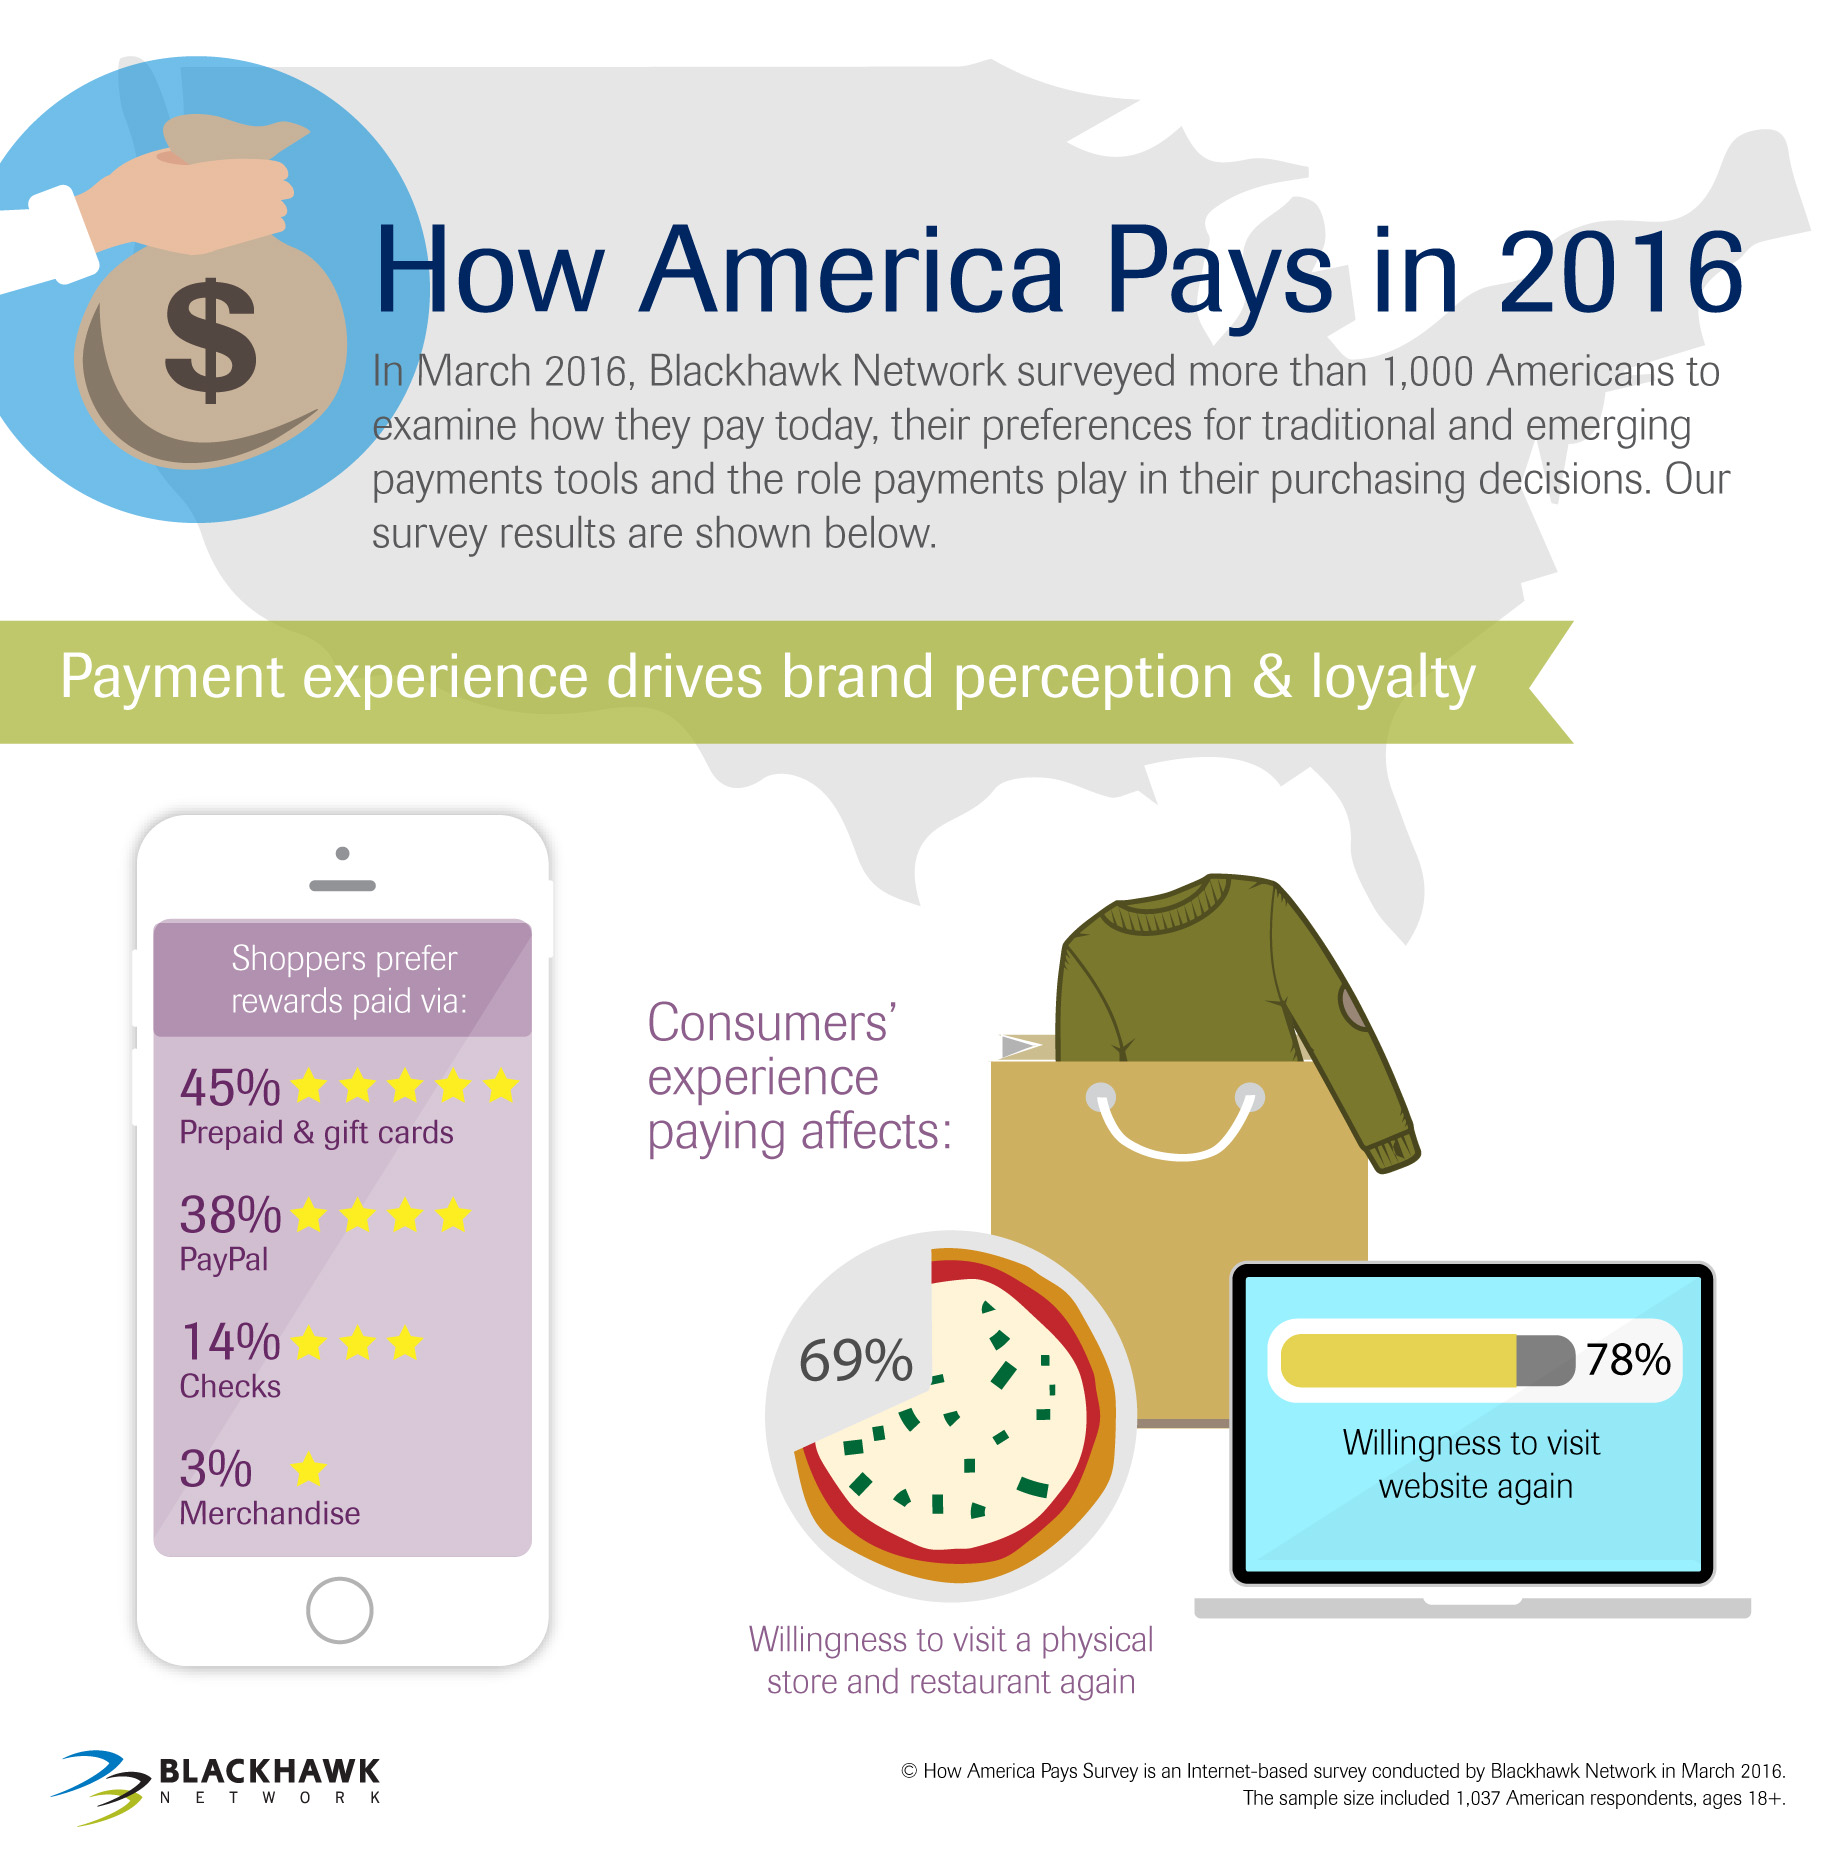 Payment experience drives brand perception and loyalty